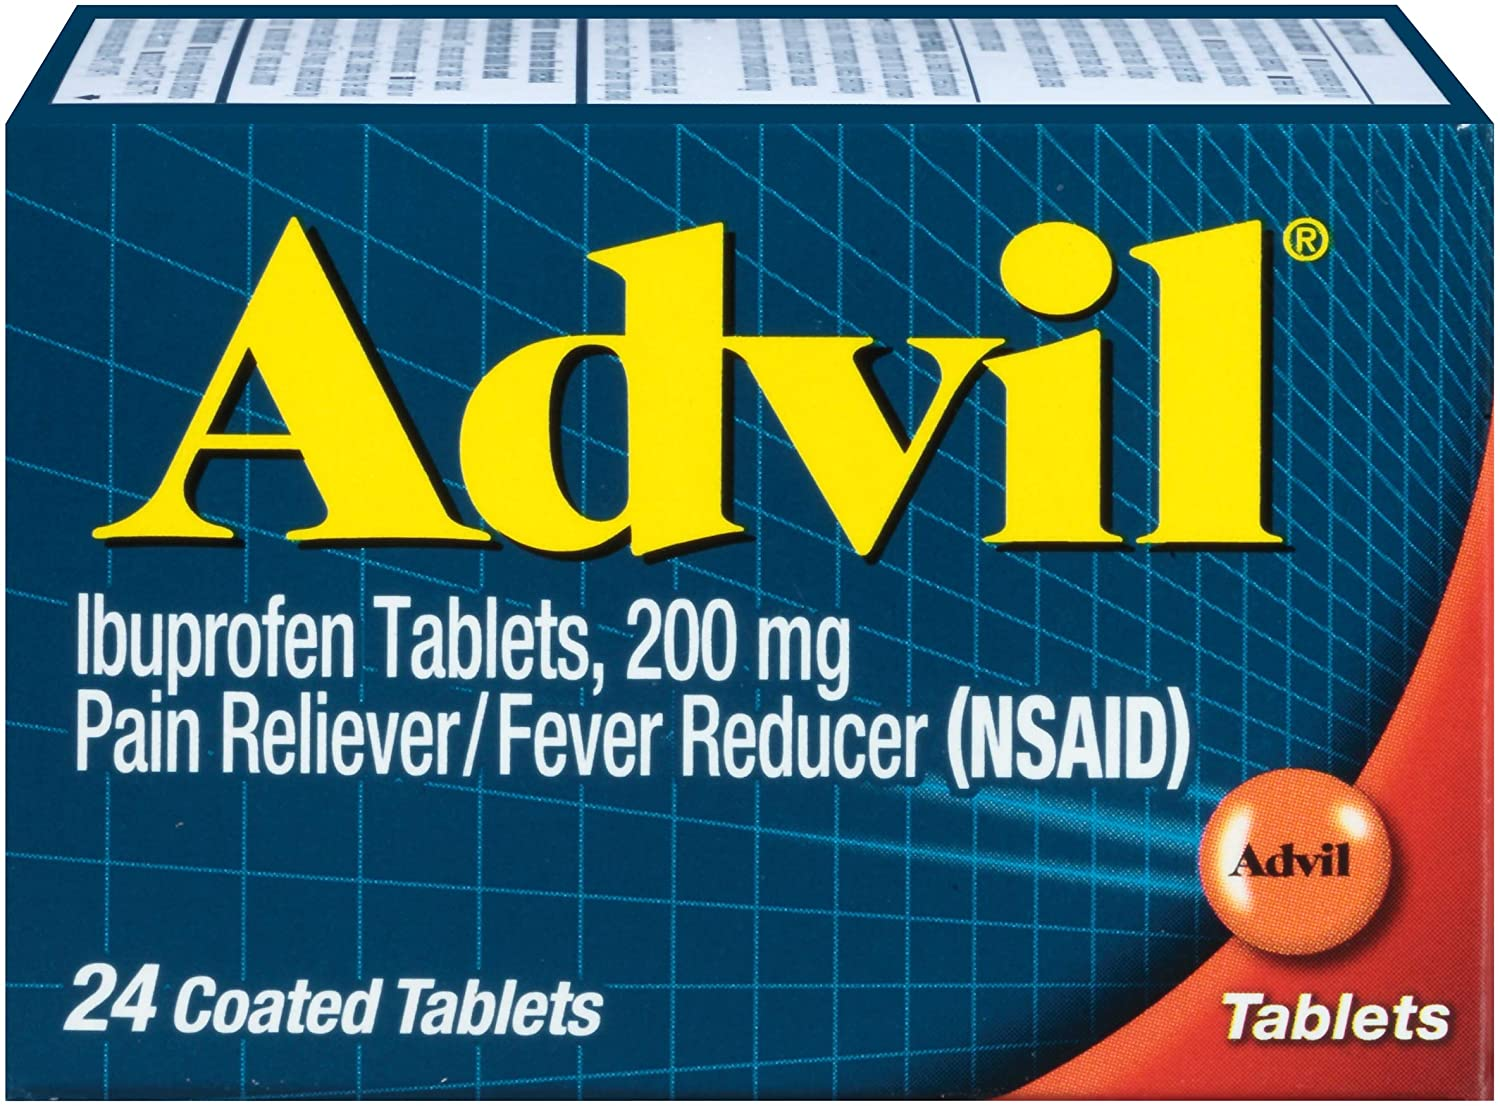 Advil Coated Tablets Pain Reliever and Fever Reducer, Ibuprofen 200mg, 24 Count, Fast-Acting Formula for Headache Relief, Toothache Pain Relief and Arthritis Pain Relief: Health & Personal Care